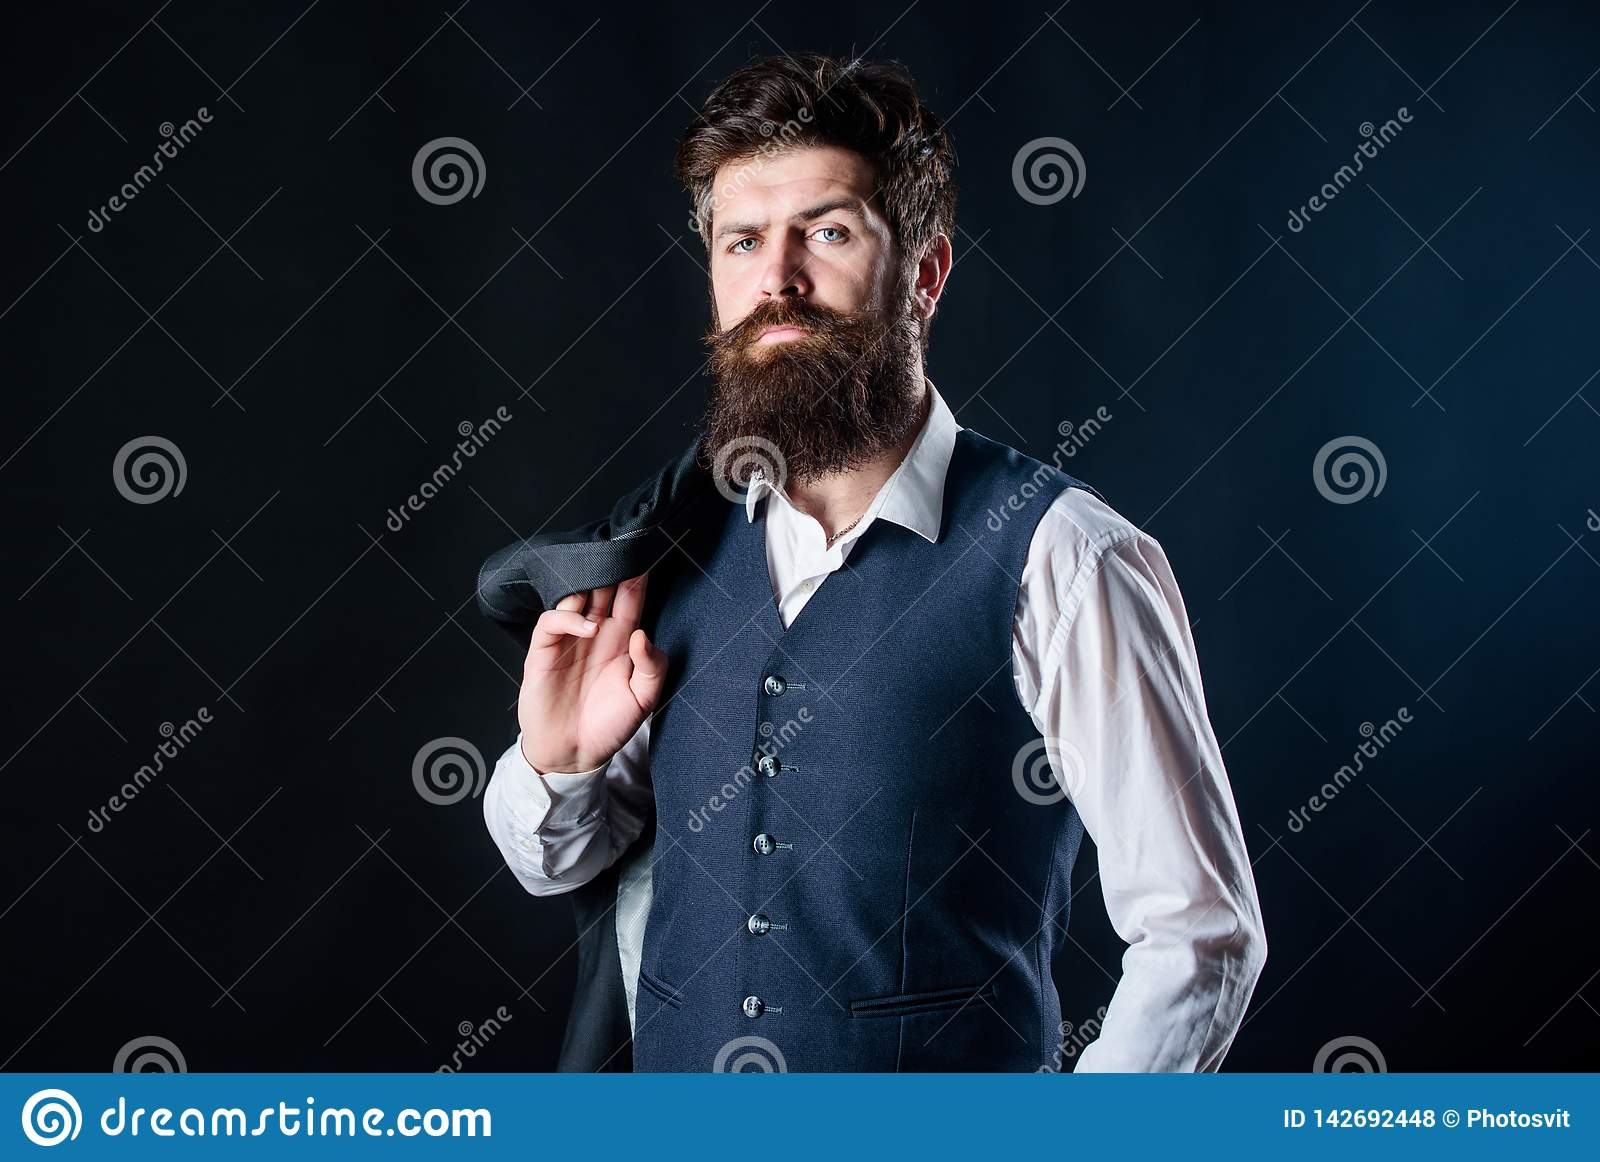 Custom made suit. Man bearded hipster wear formal suit with shirt vest and jacket. Elegant custom outfit fashion